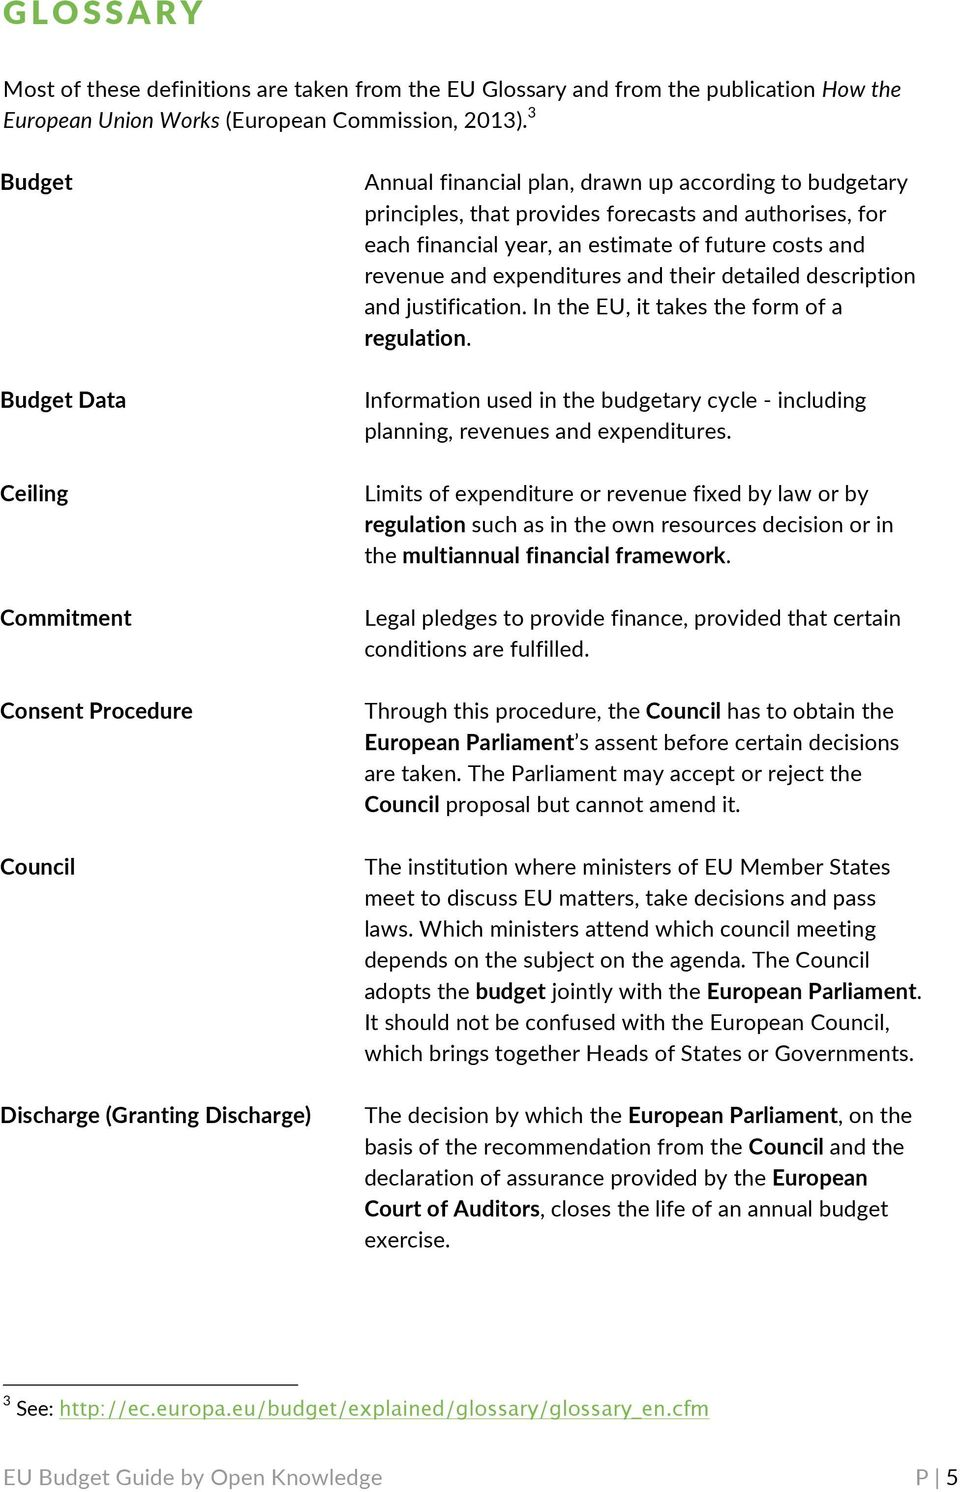 revenueandexpendituresandtheirdetaileddescription andjustification.intheeu,ittakestheformofa regulation. Budget*Data* Informationusedinthebudgetarycyclebincluding planning,revenuesandexpenditures.